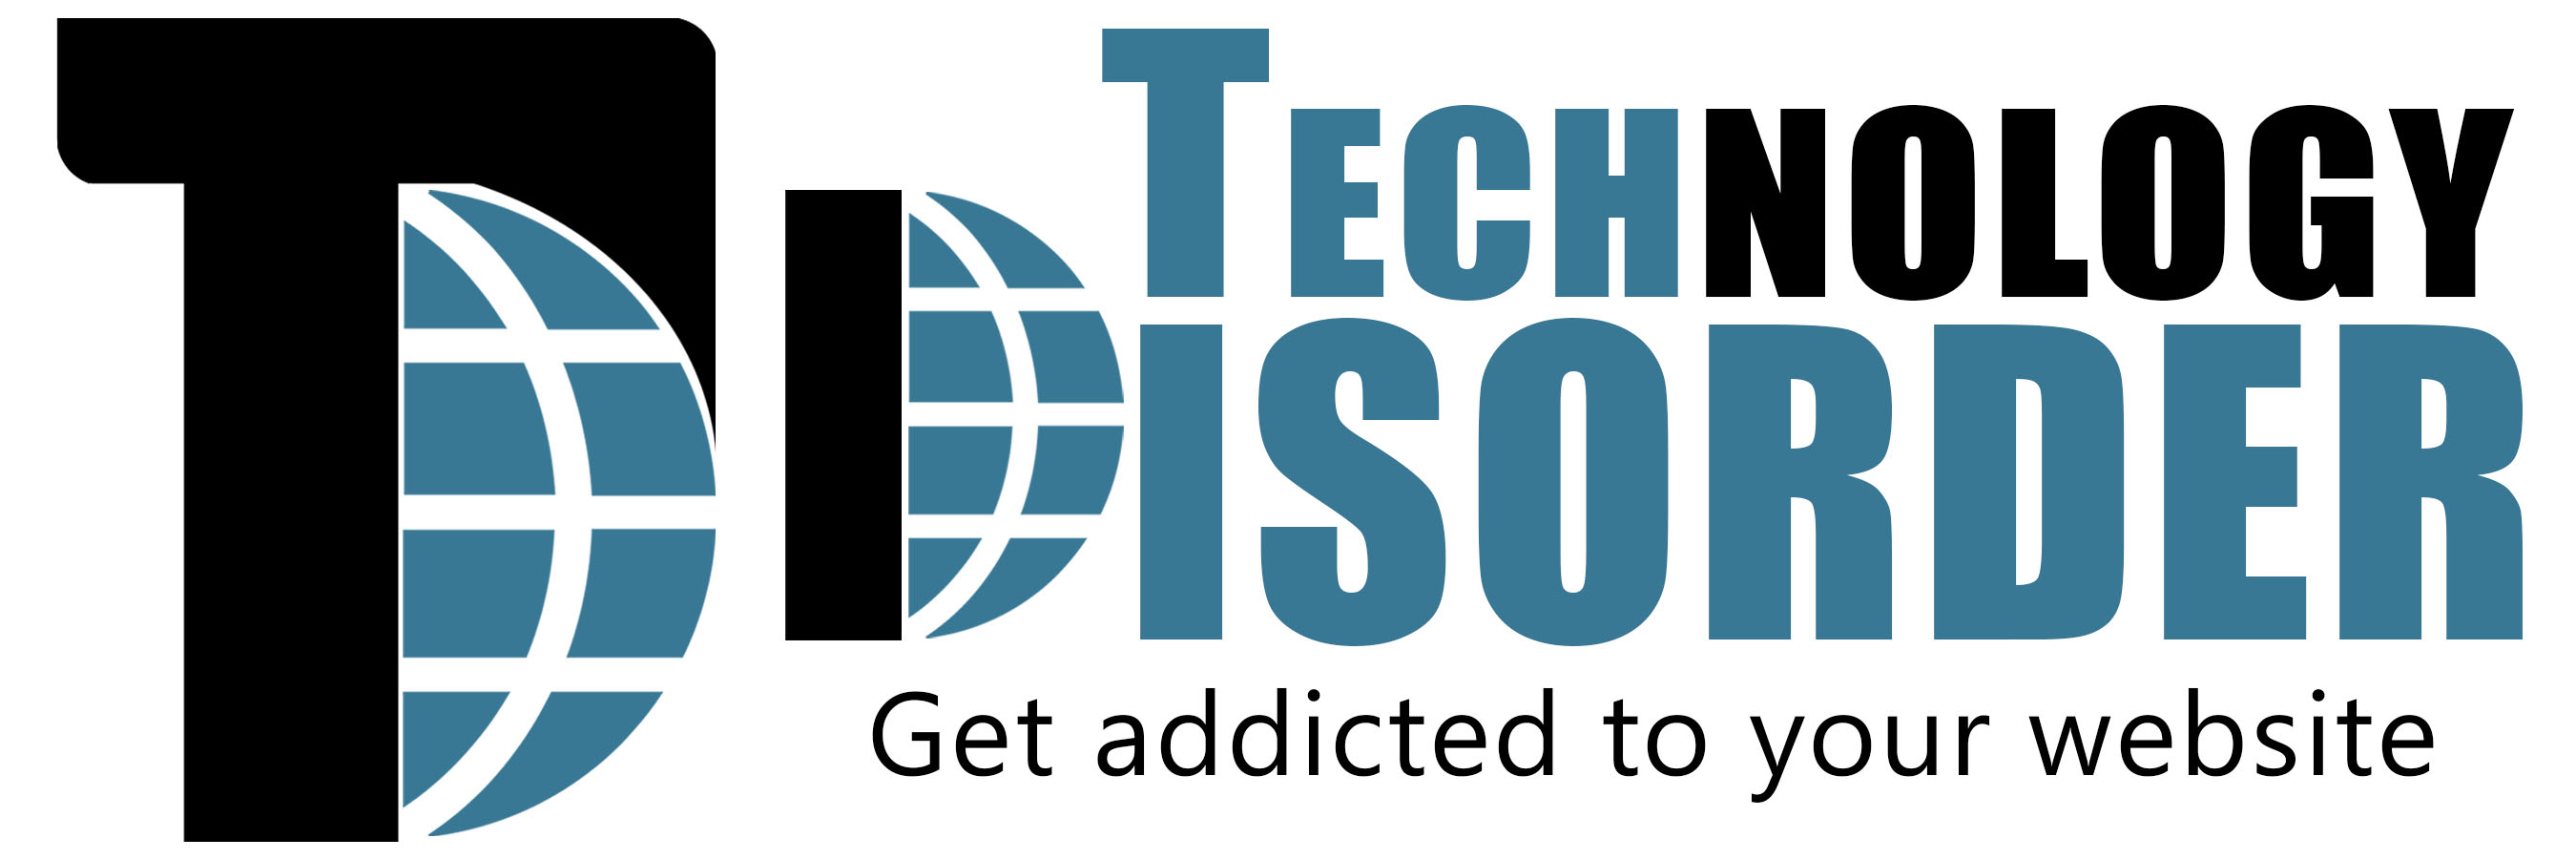 Tech Disorder